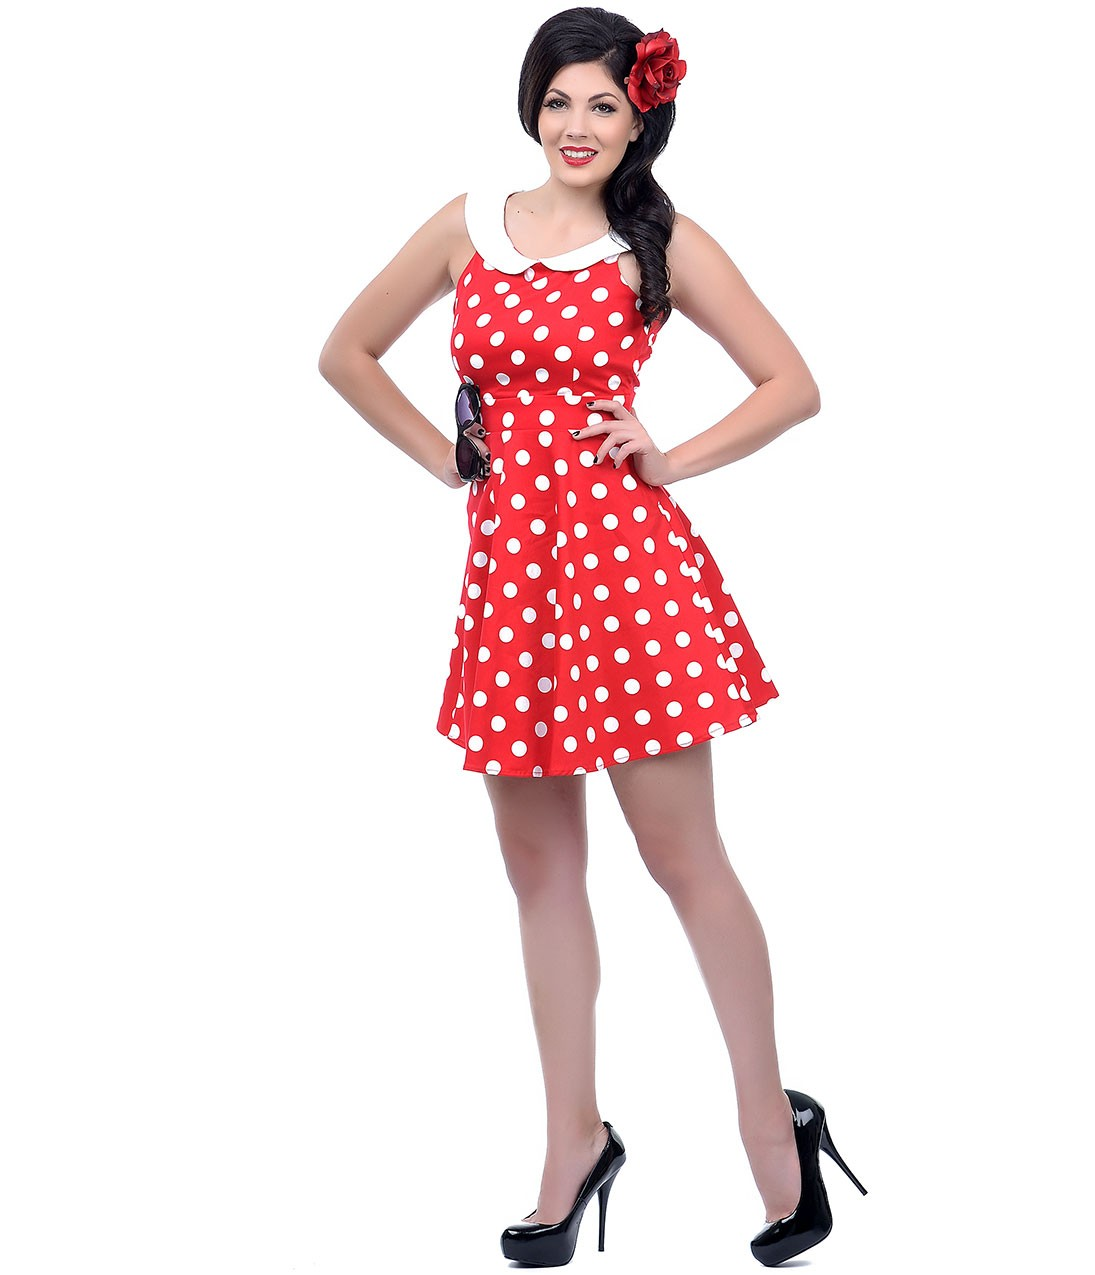 Red Polka Dot Dress Picture Collection Dressedupgirl Com